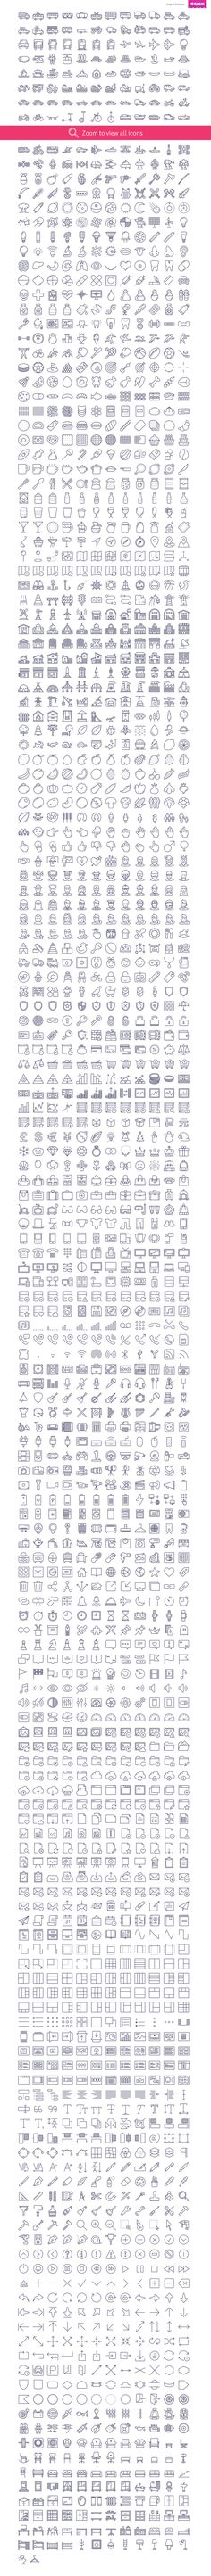 2090 icons in UniGrid set by Icojam on Creative Market. icojam, stroke, outline, ios, food, transport, military, buildings, devices, finance, tools, wireframe, music, people, baby, medicine, science, unigrid, christmas, interior